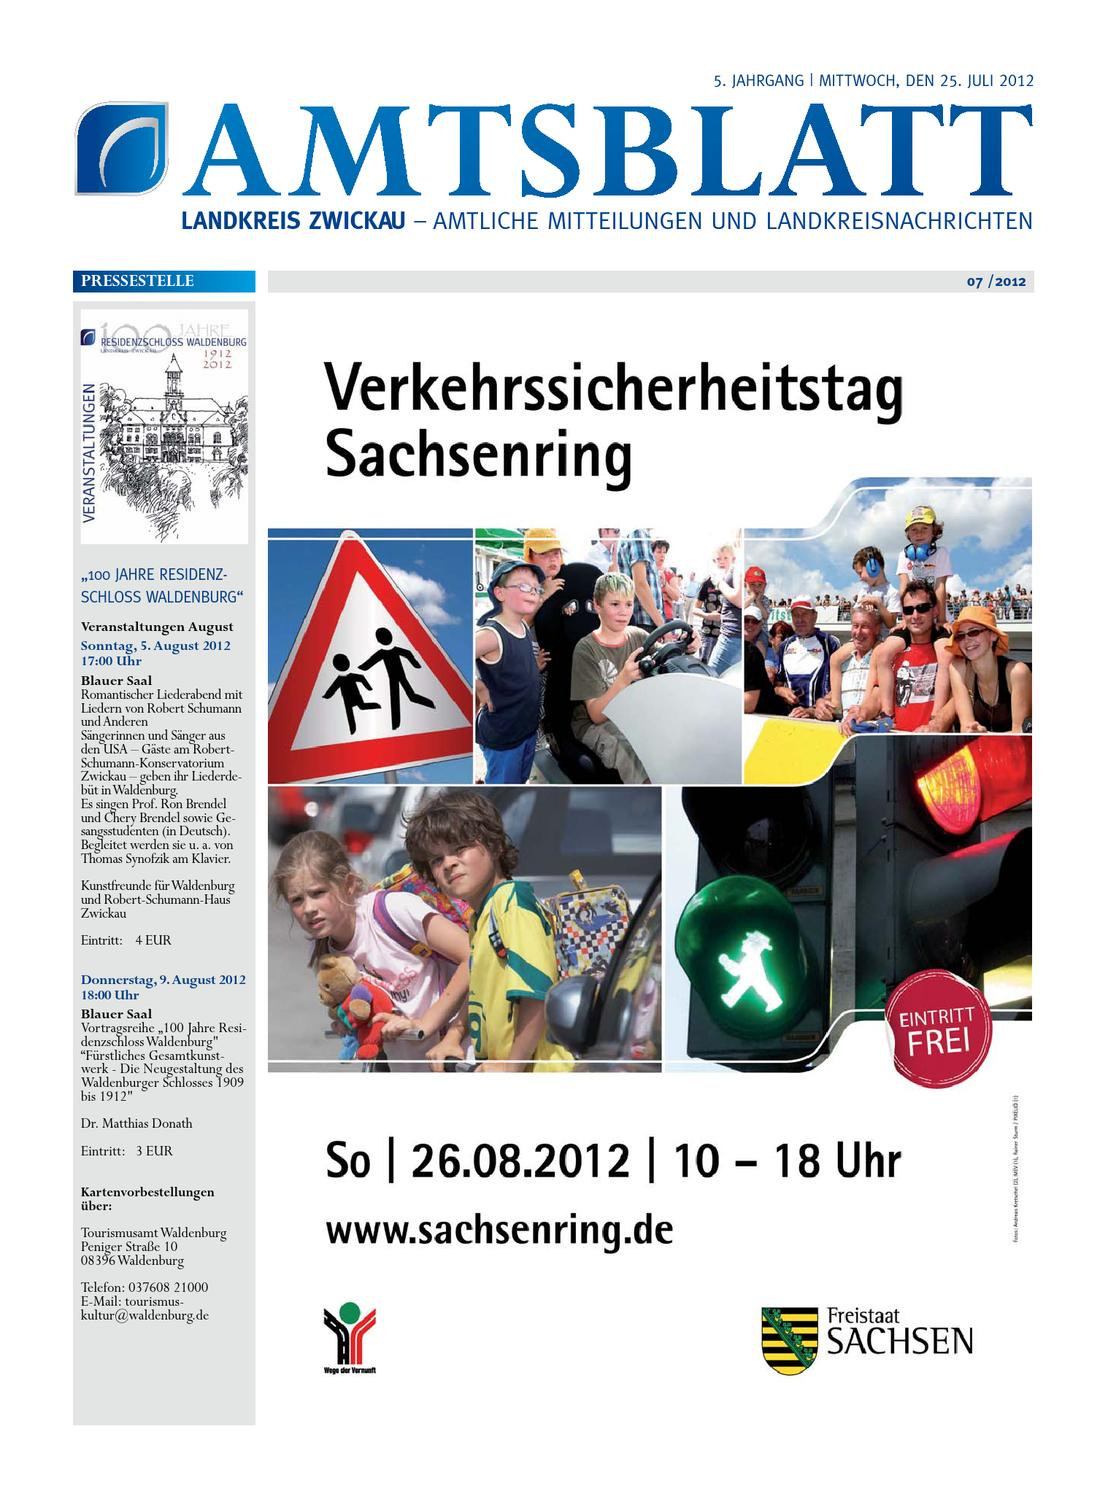 20120725_Amtsblatt_LKZ_Z by Page Pro Media GmbH - issuu